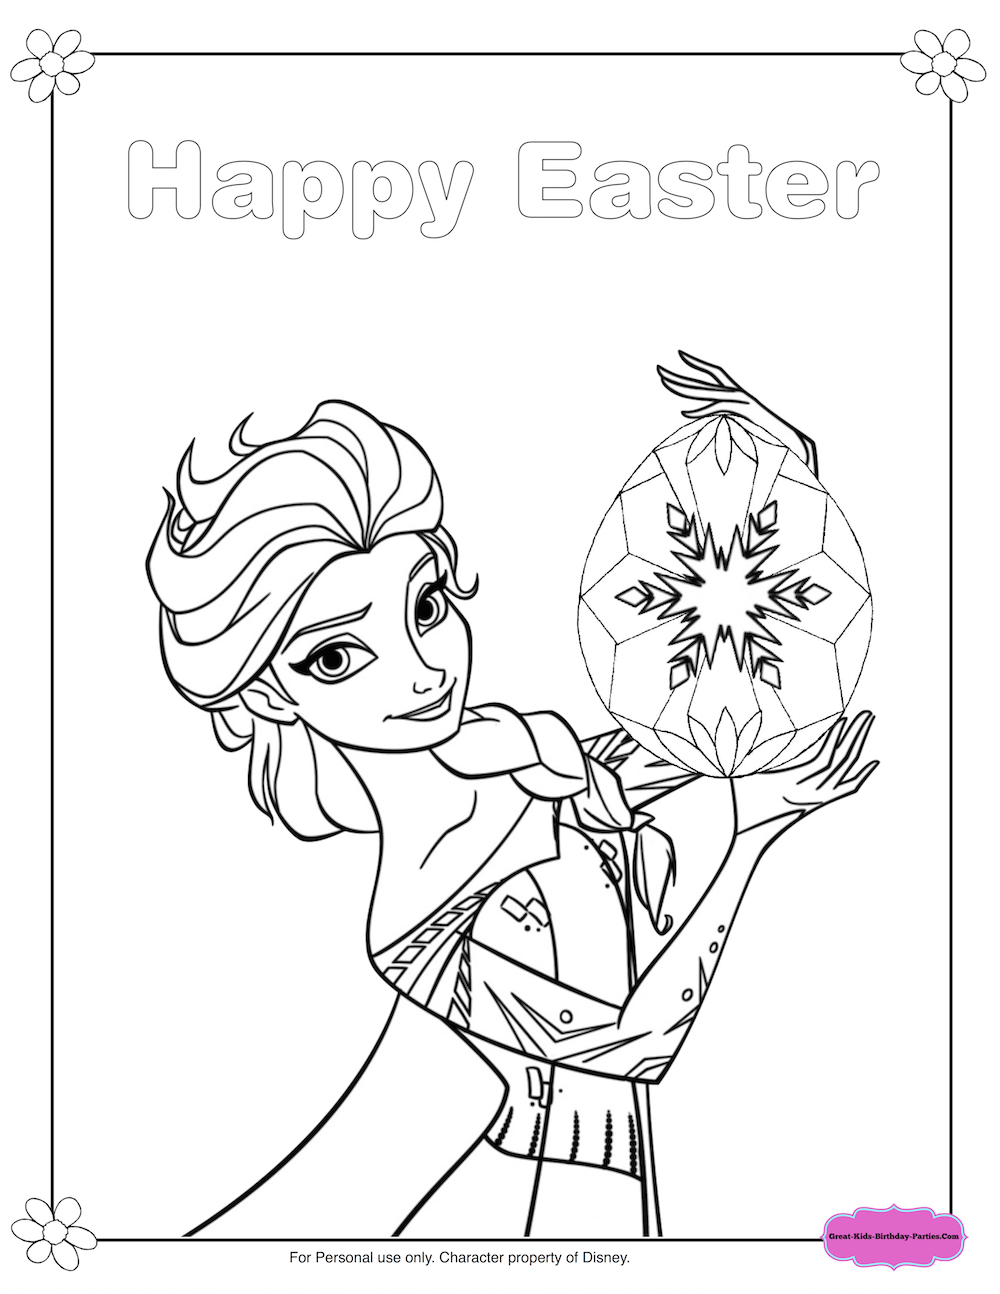 Frozen Elsa And Olaf Easter Coloring Pages Fun Easter Printables